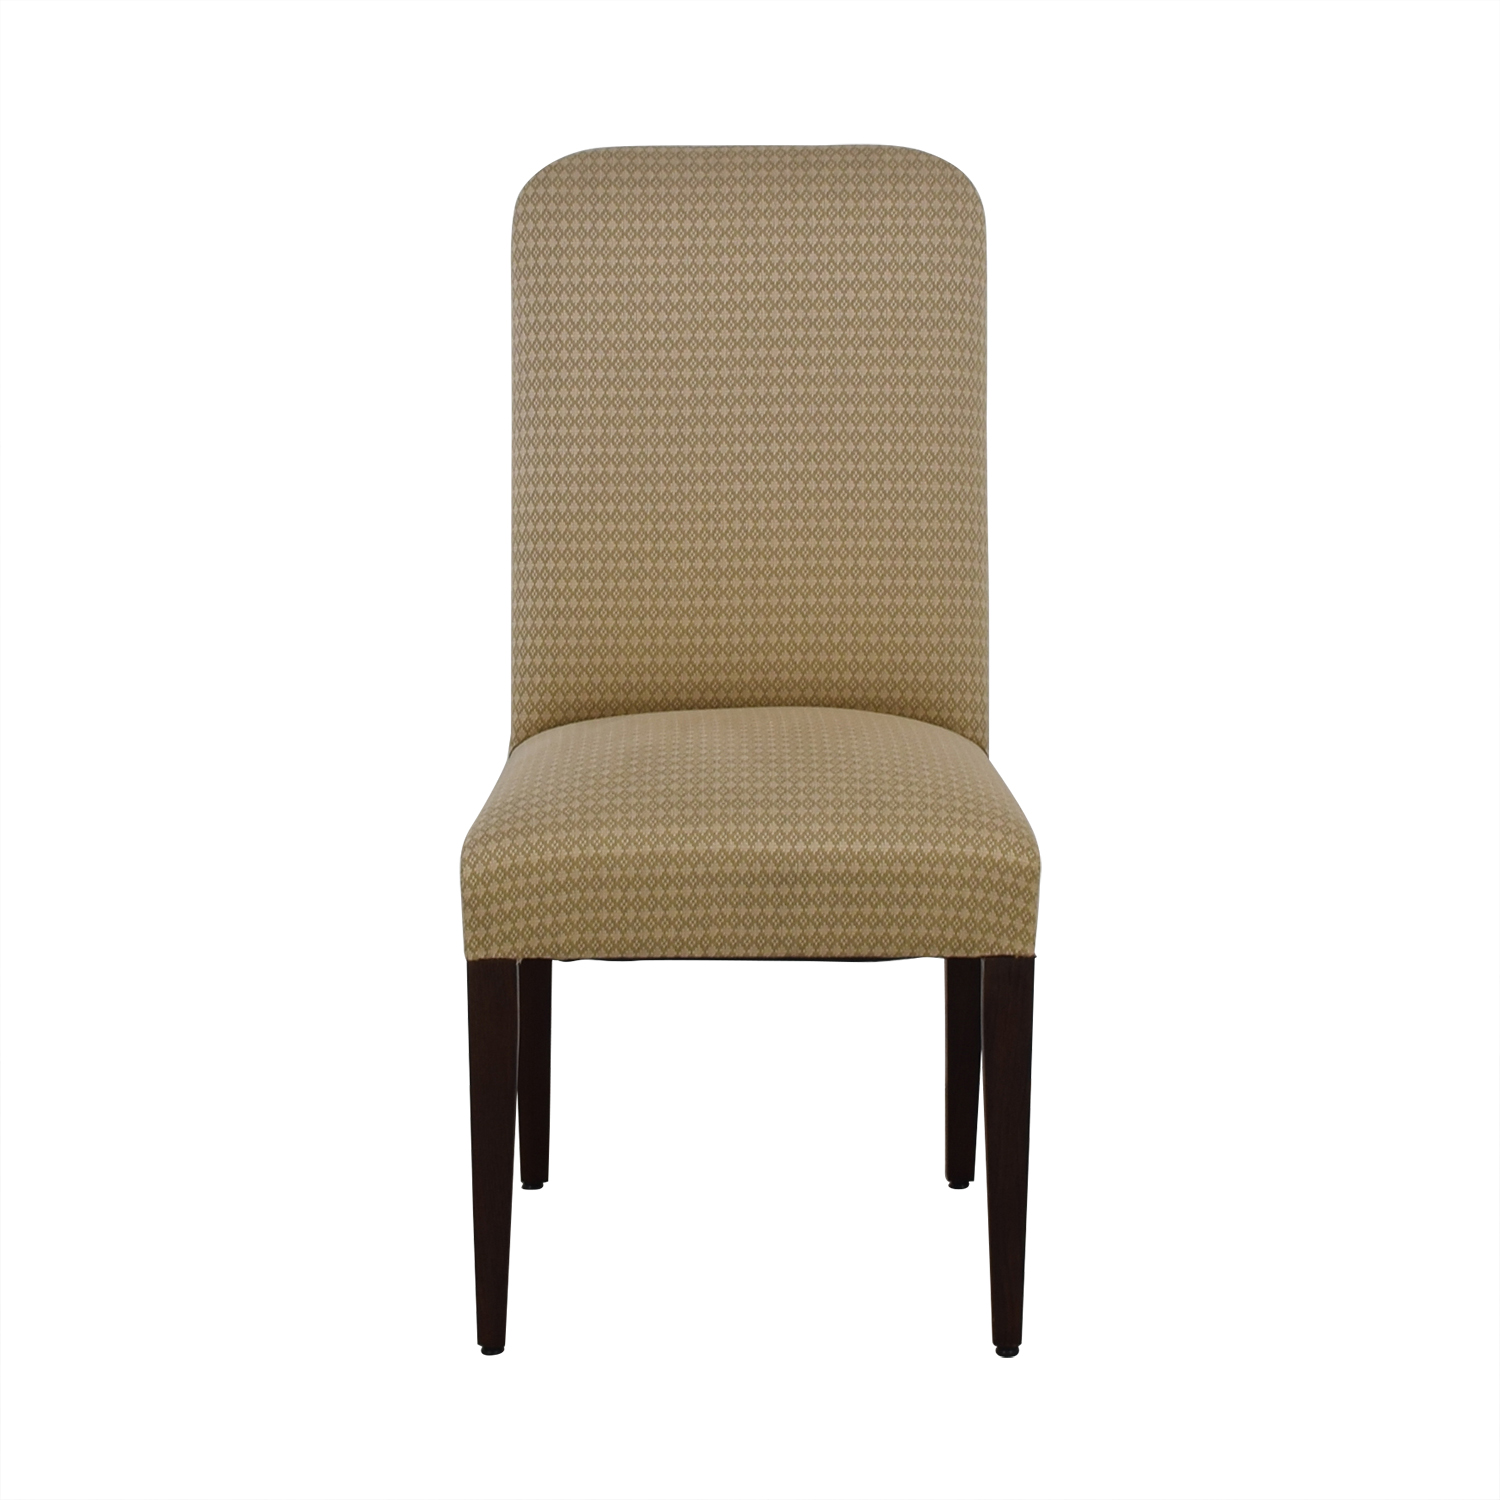 Furniture Masters Furniture Masters Tan Accent Chair nyc